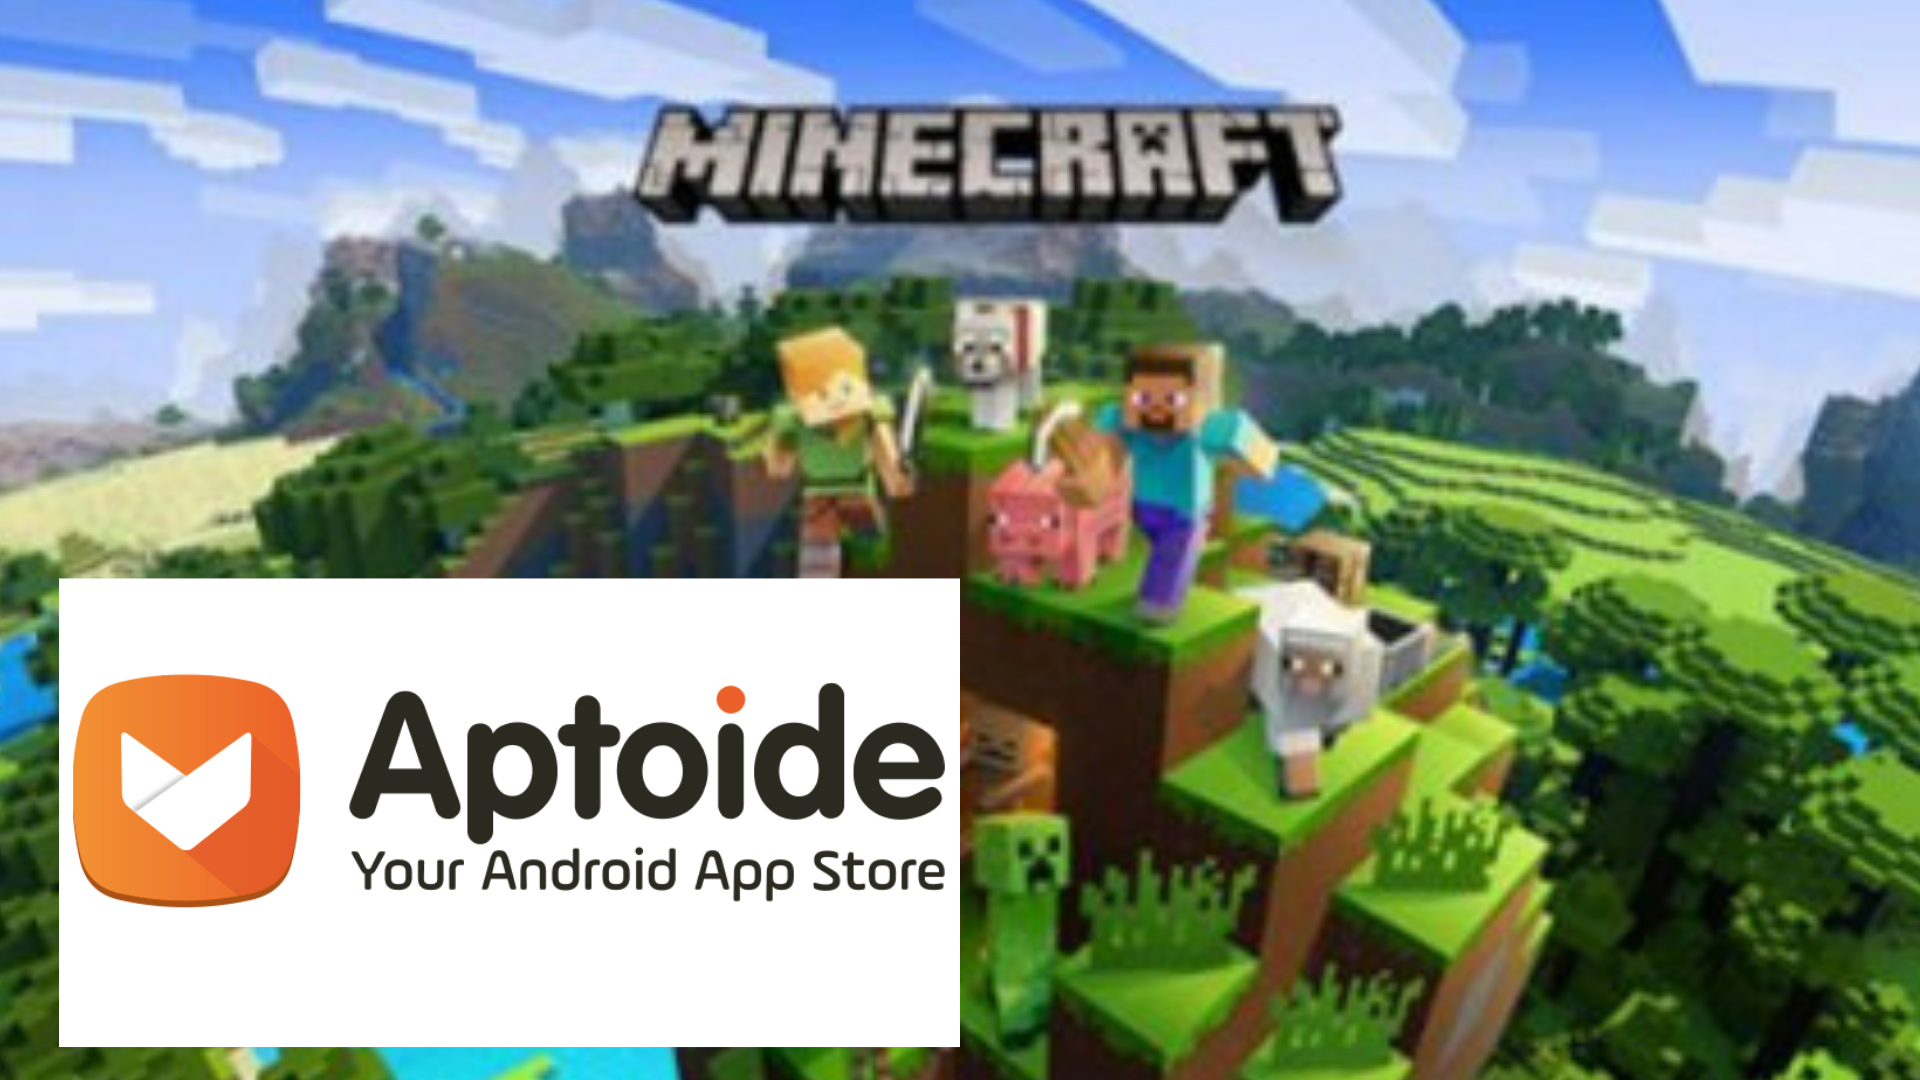 How to download Minecraft pocket edition using Aptoide - The